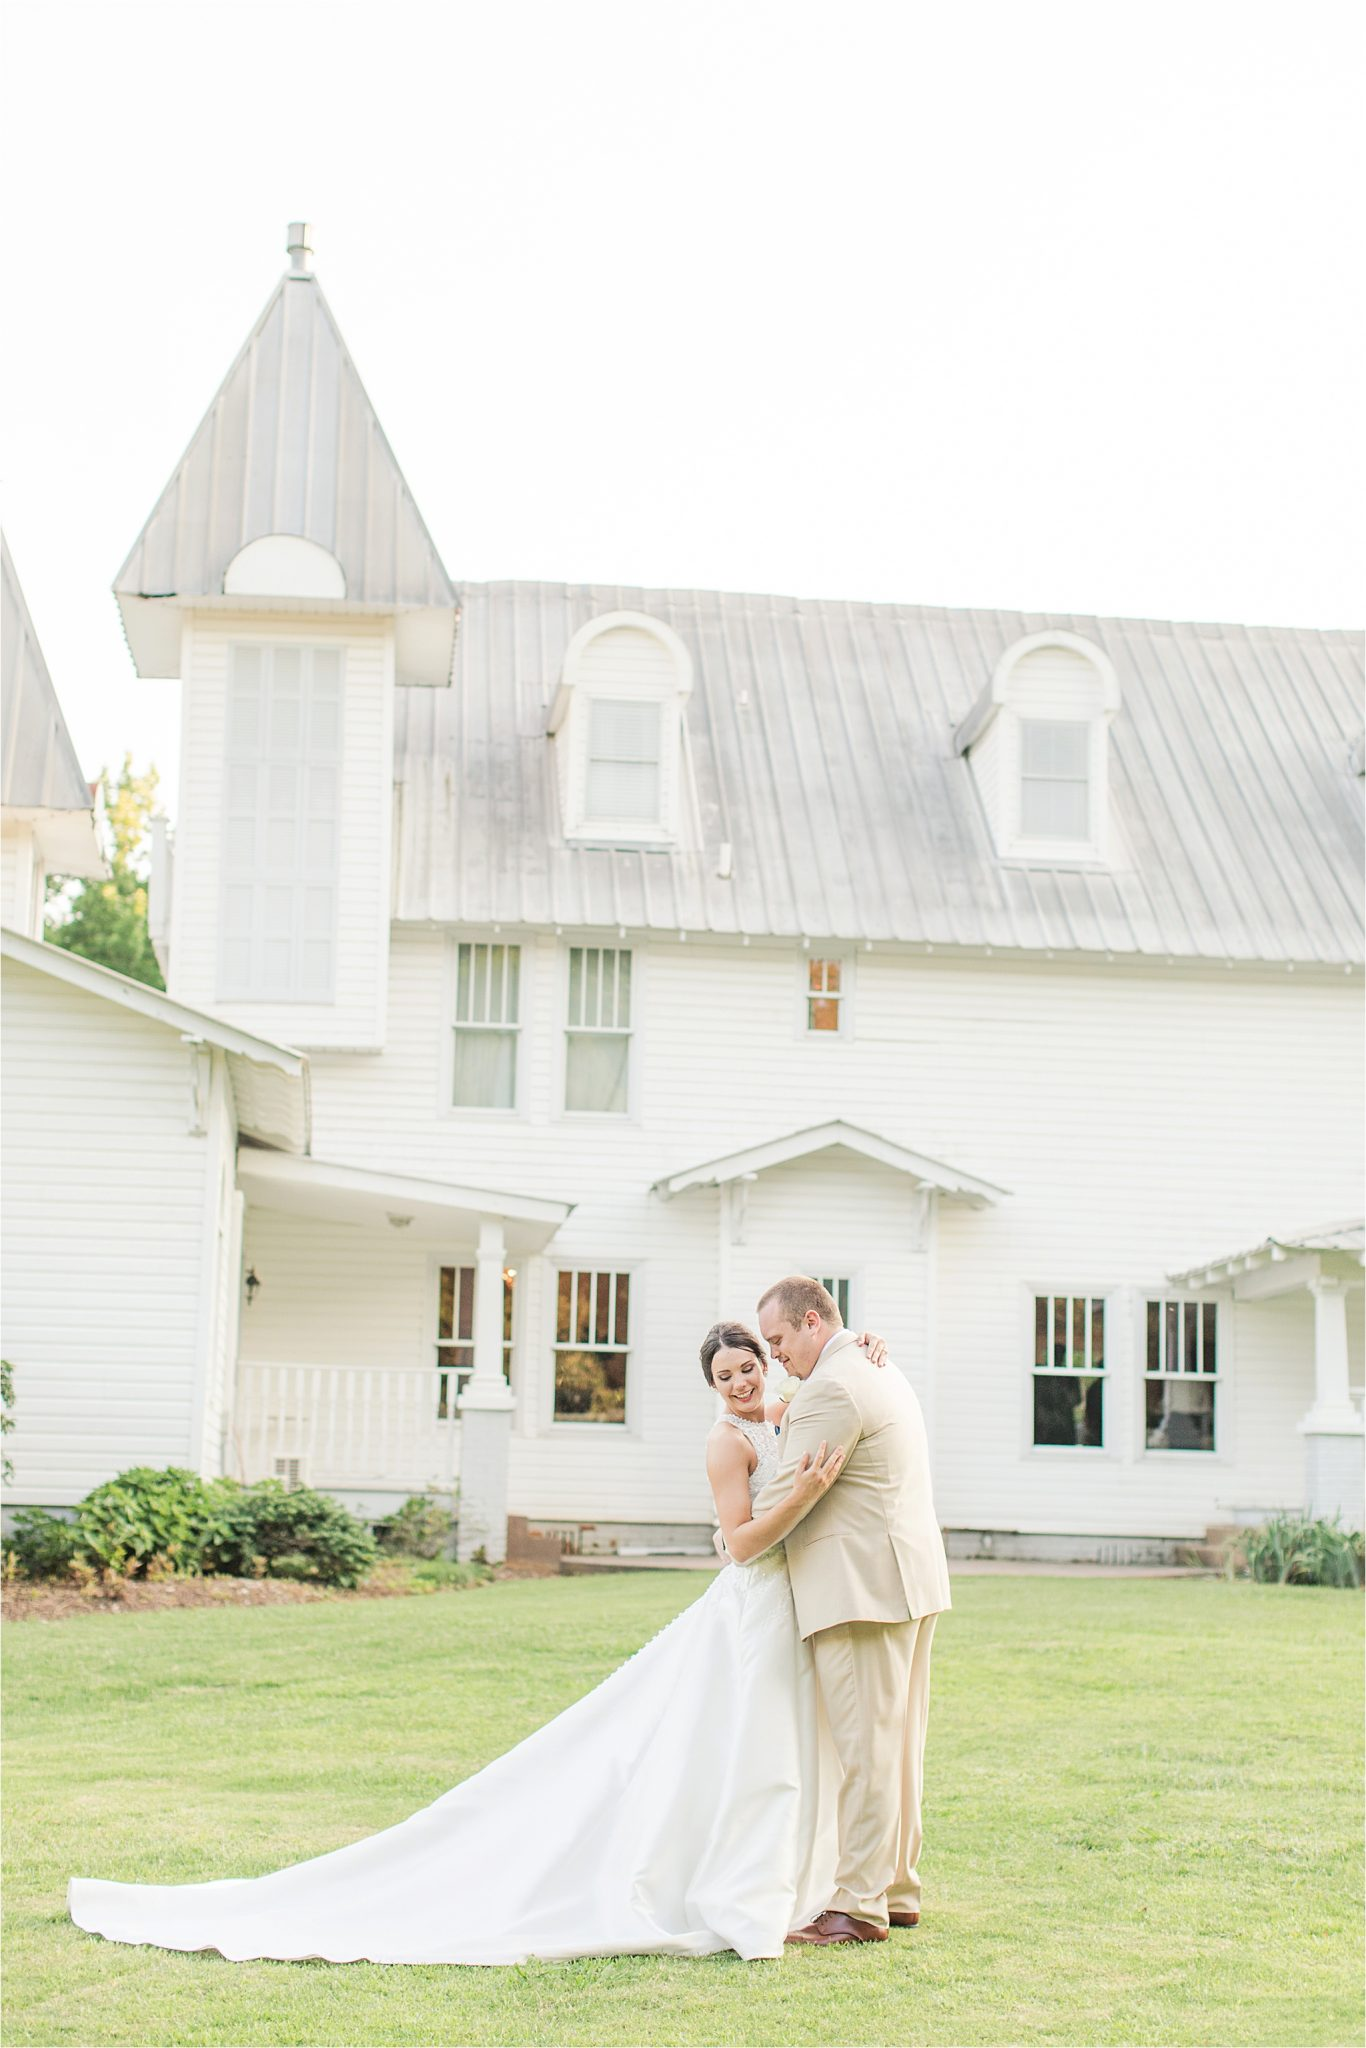 Sonnet House, Birmingham Alabama Wedding Photographer, Courtney + Ben